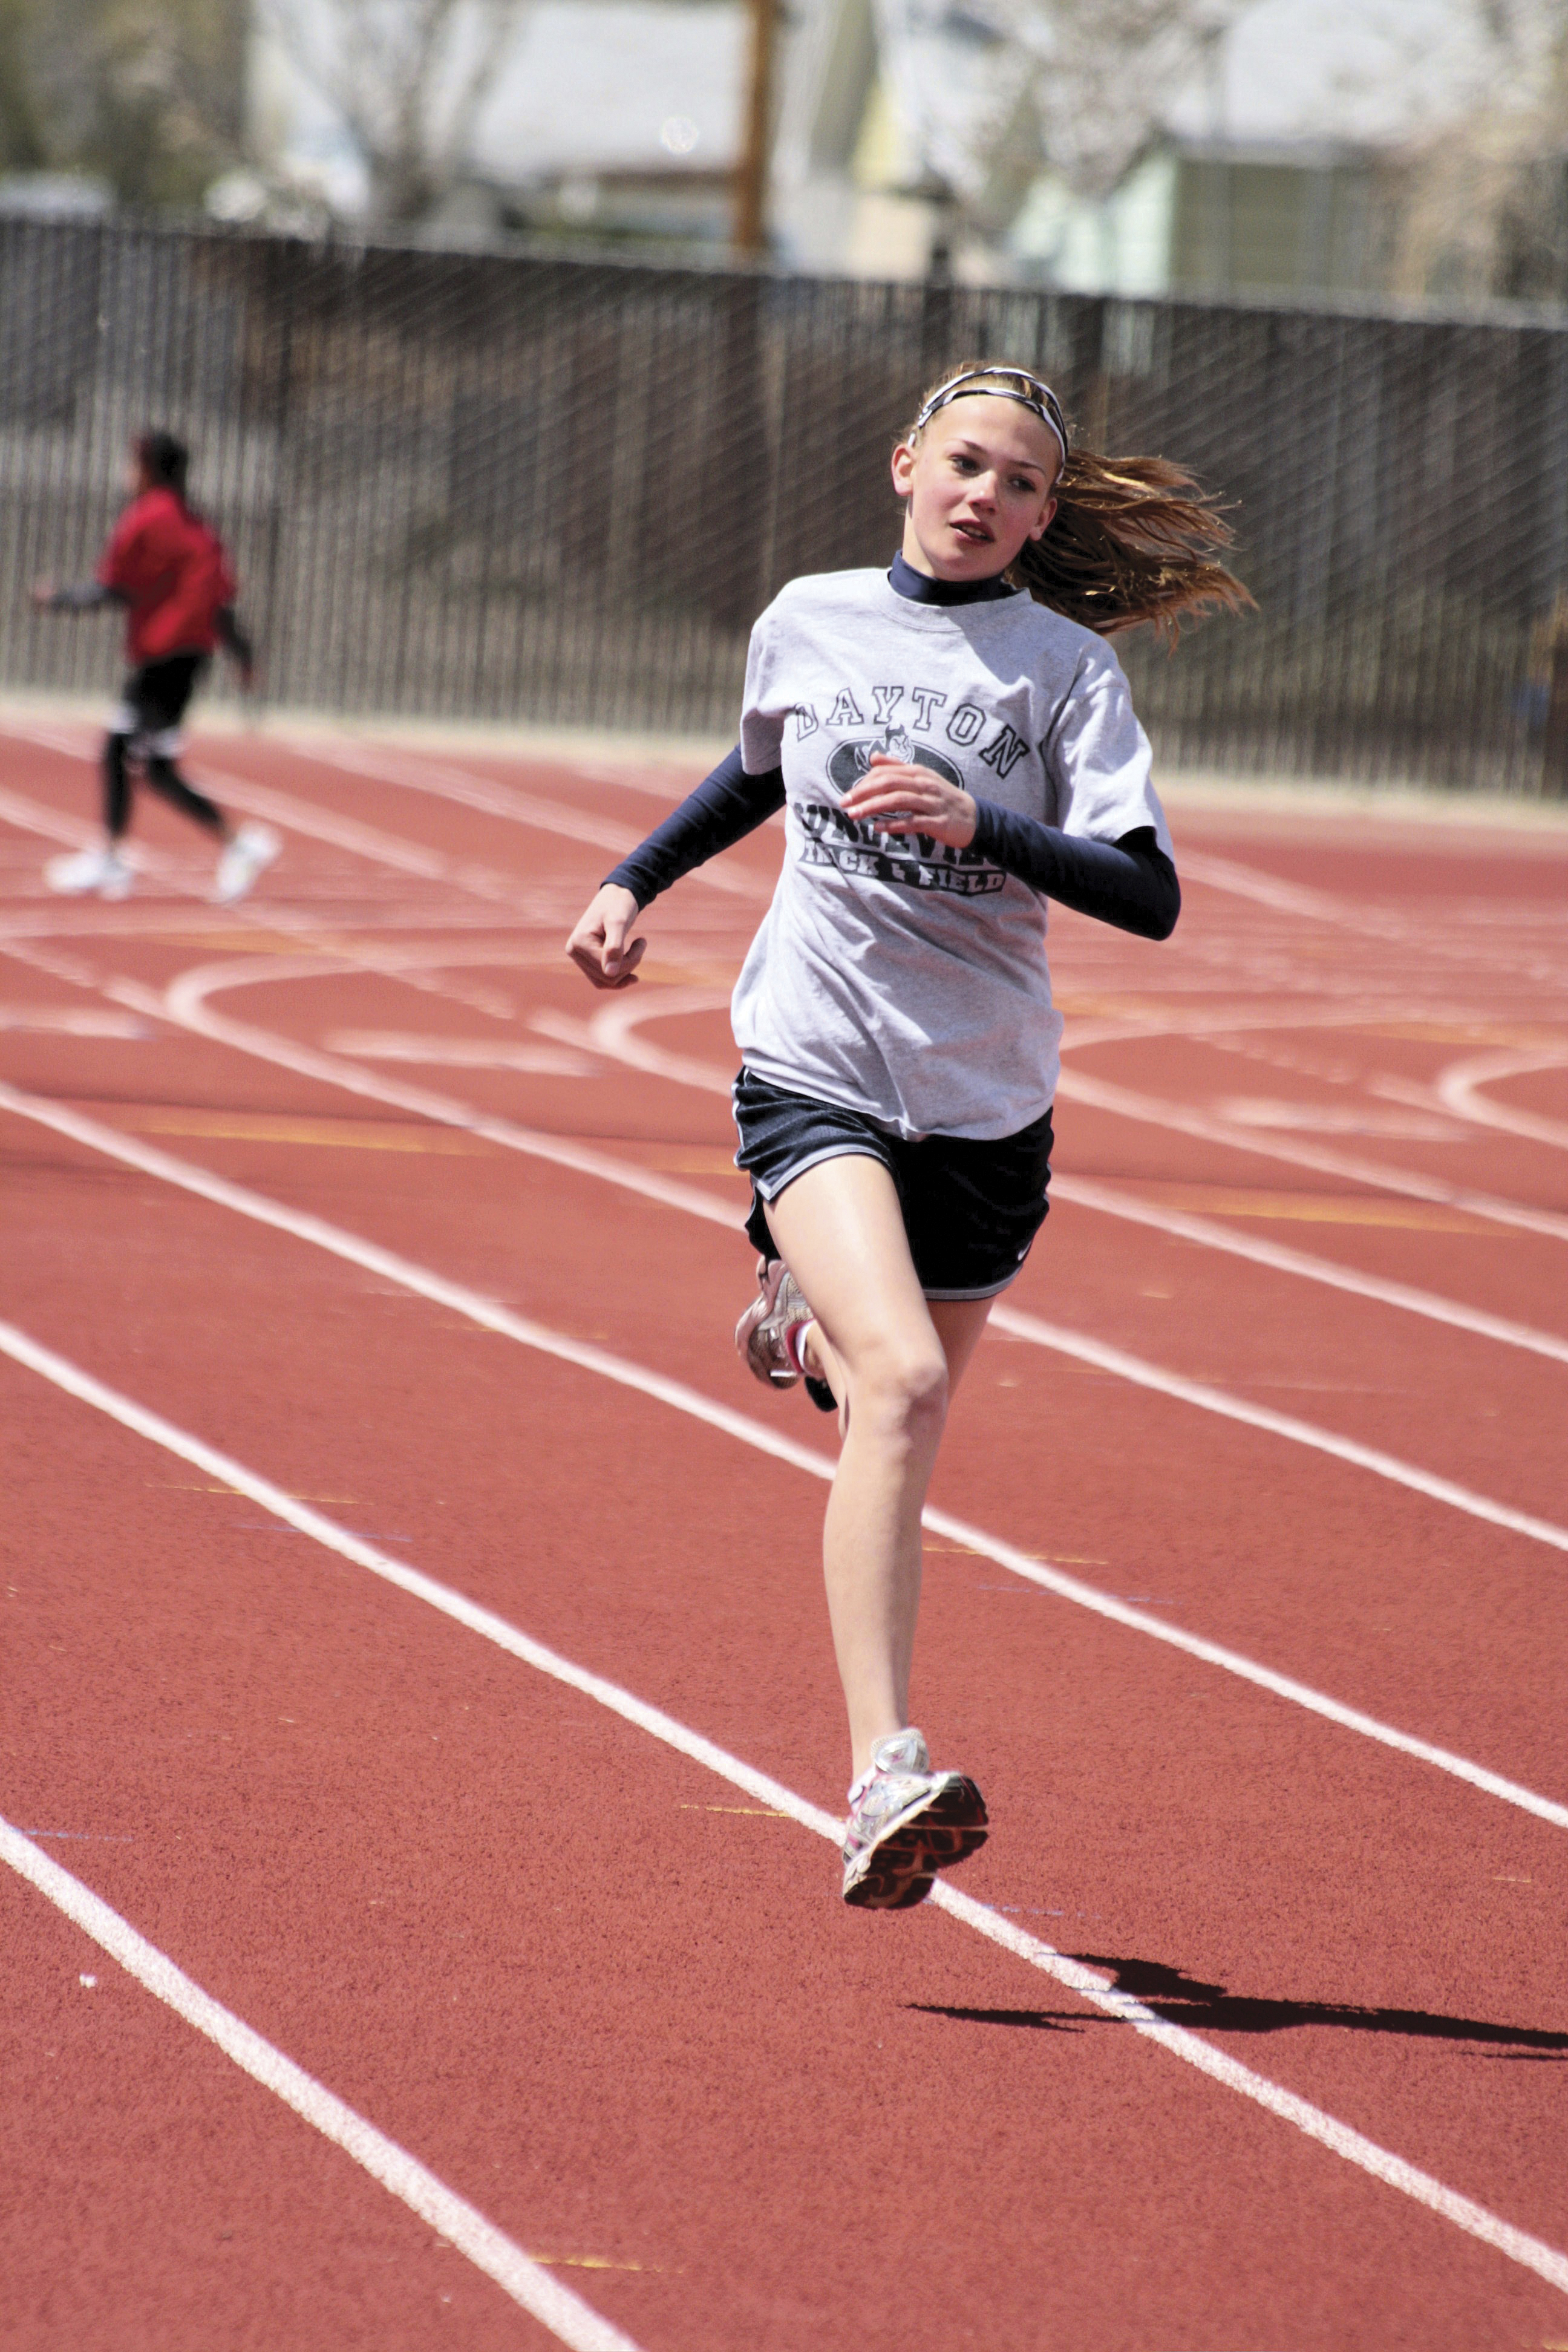 A photograph of a runner competing in a race.